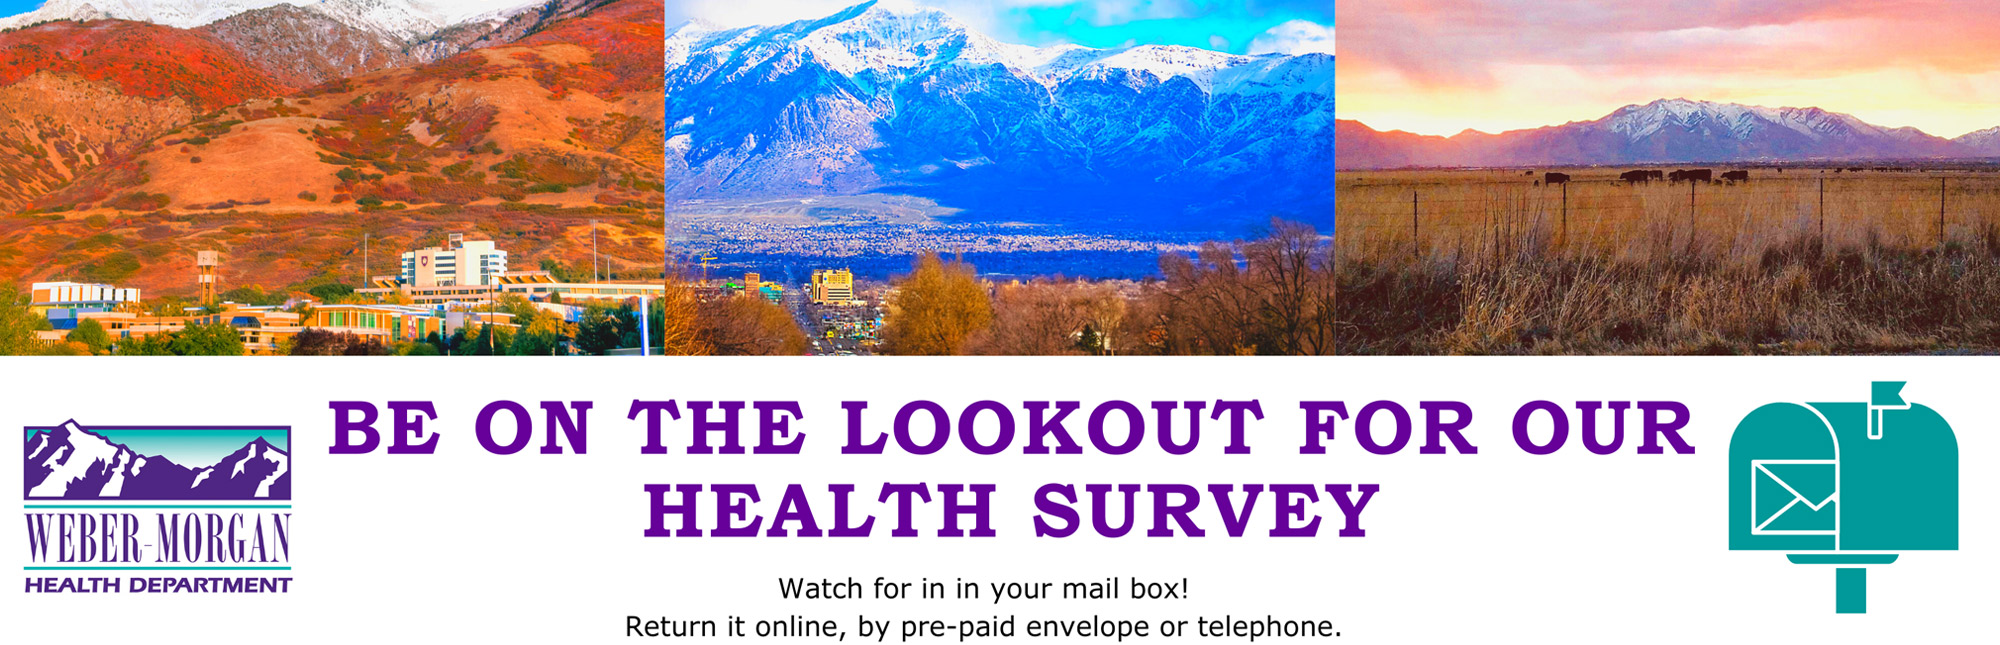 Be on the Lookout for our Health Survey